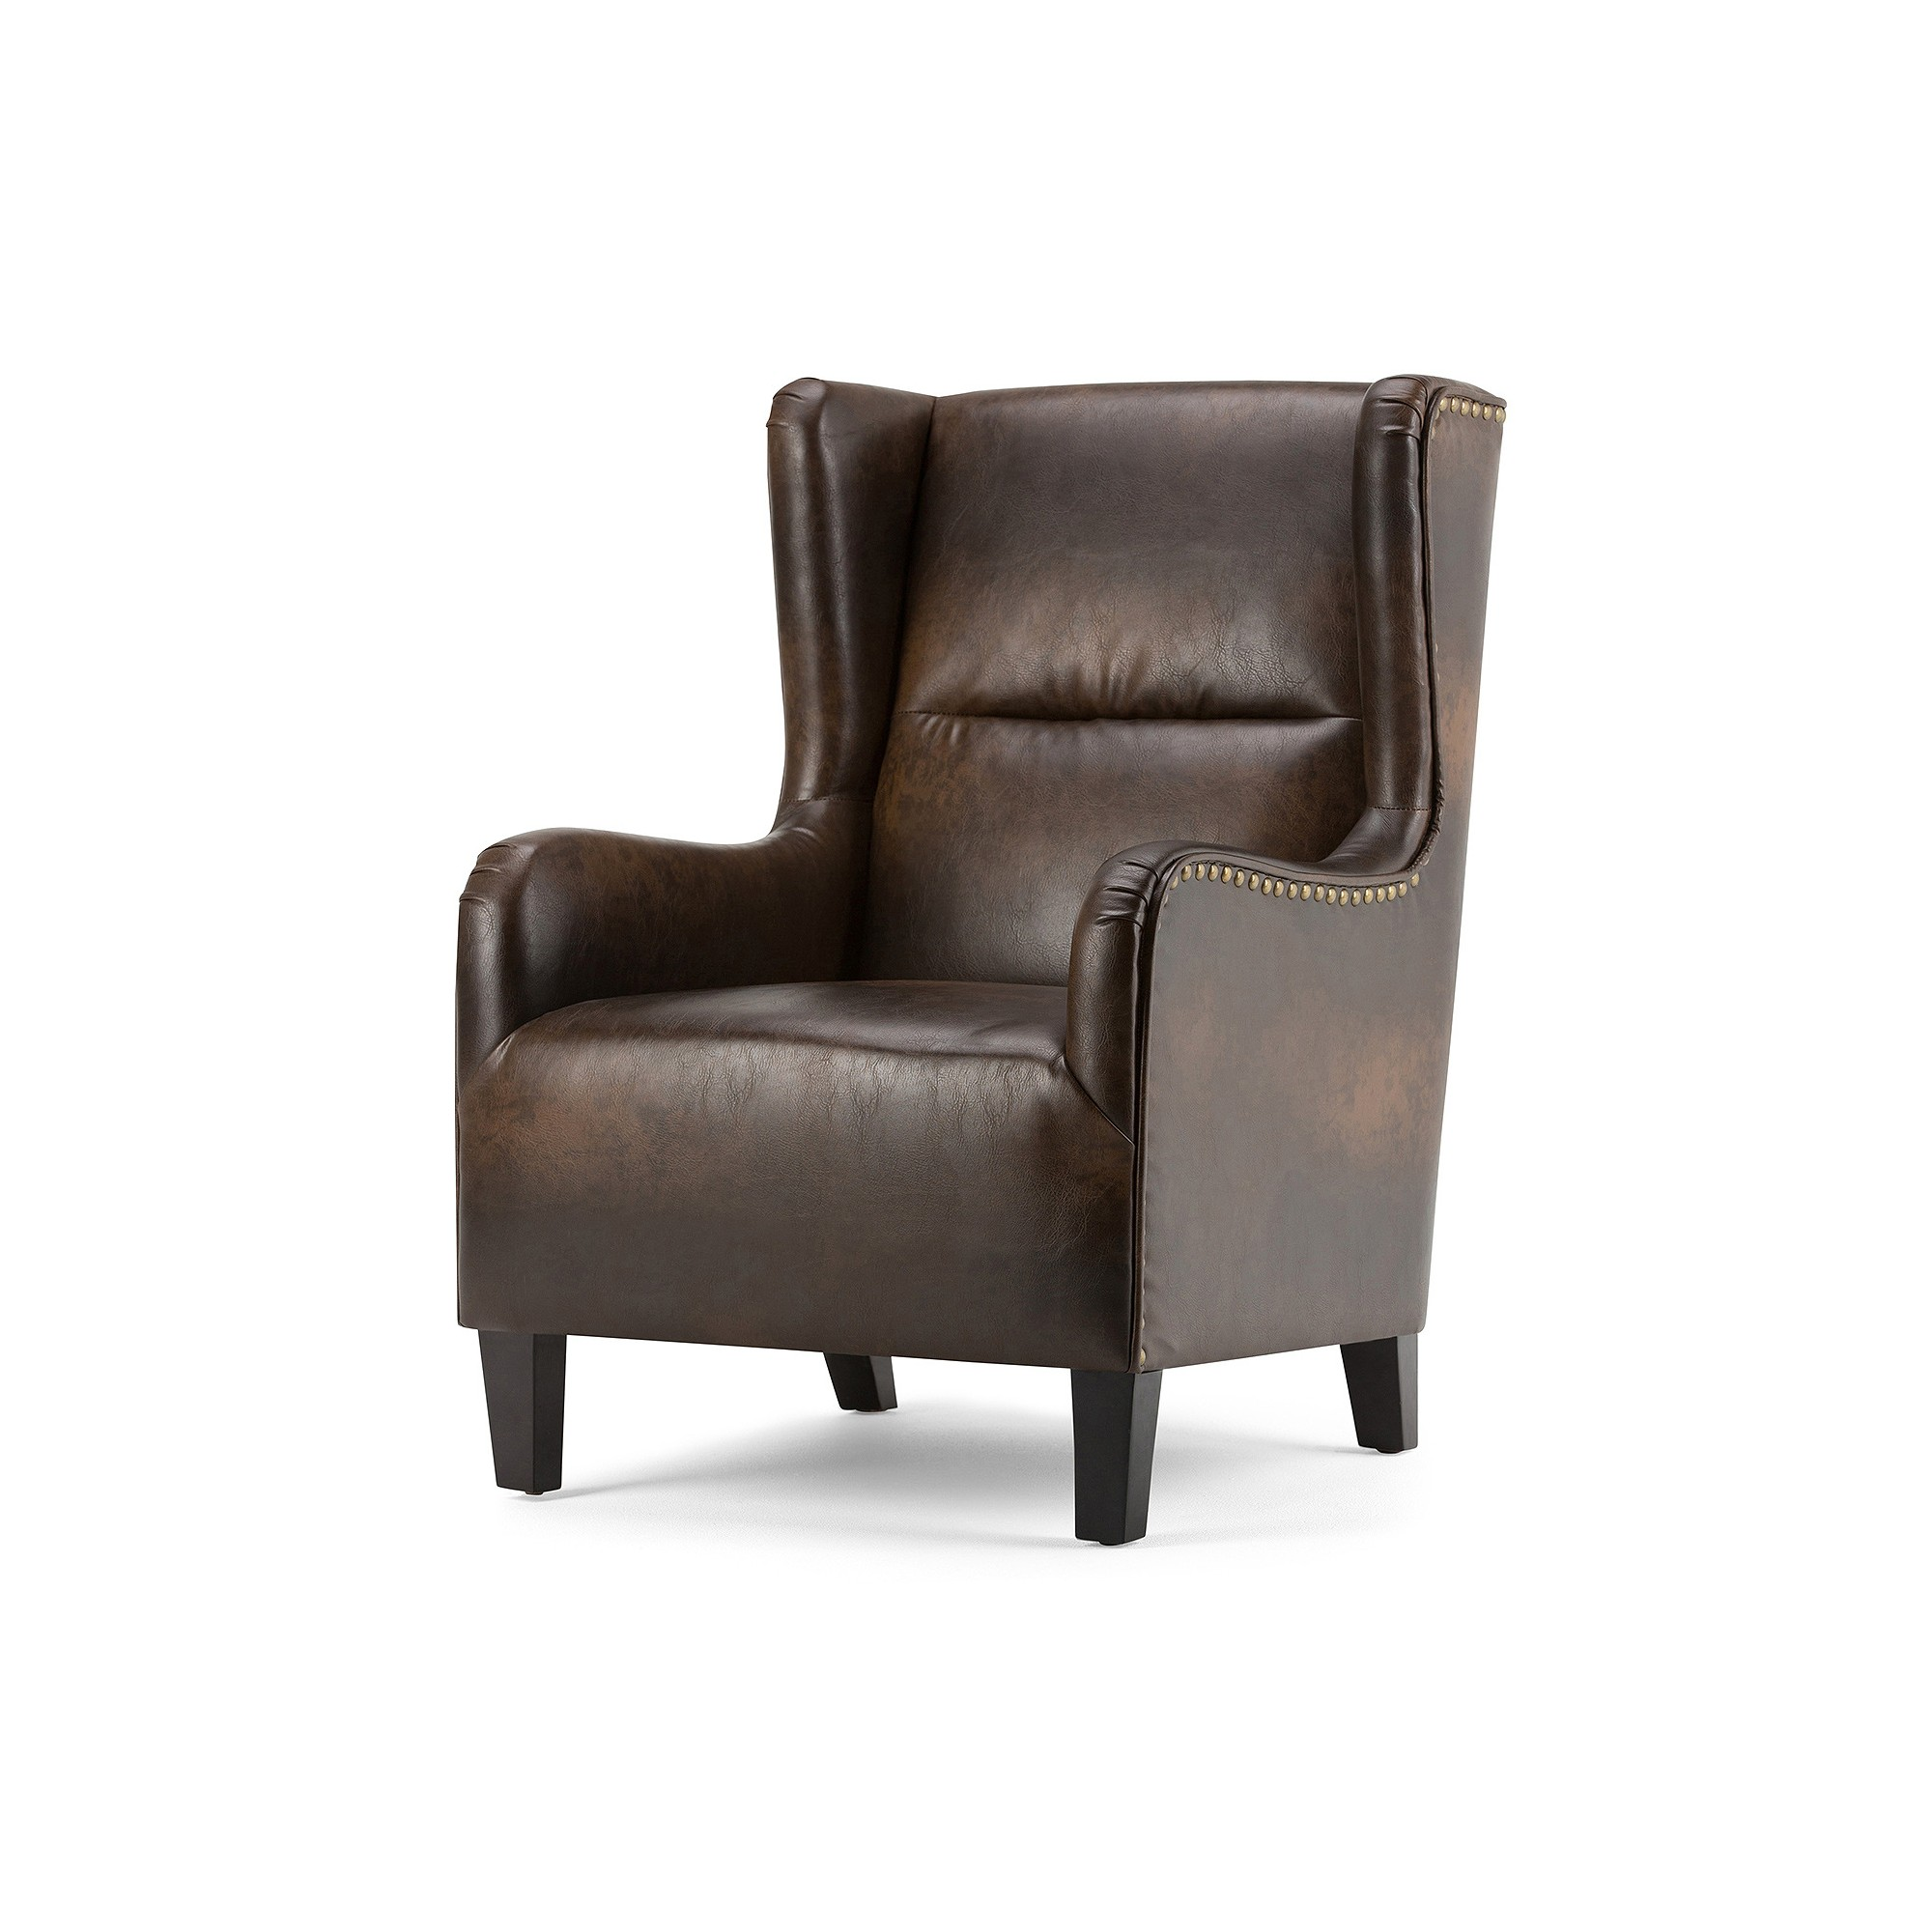 Super Manford Wingback Chair Distressed Brown Bonded Leather Caraccident5 Cool Chair Designs And Ideas Caraccident5Info